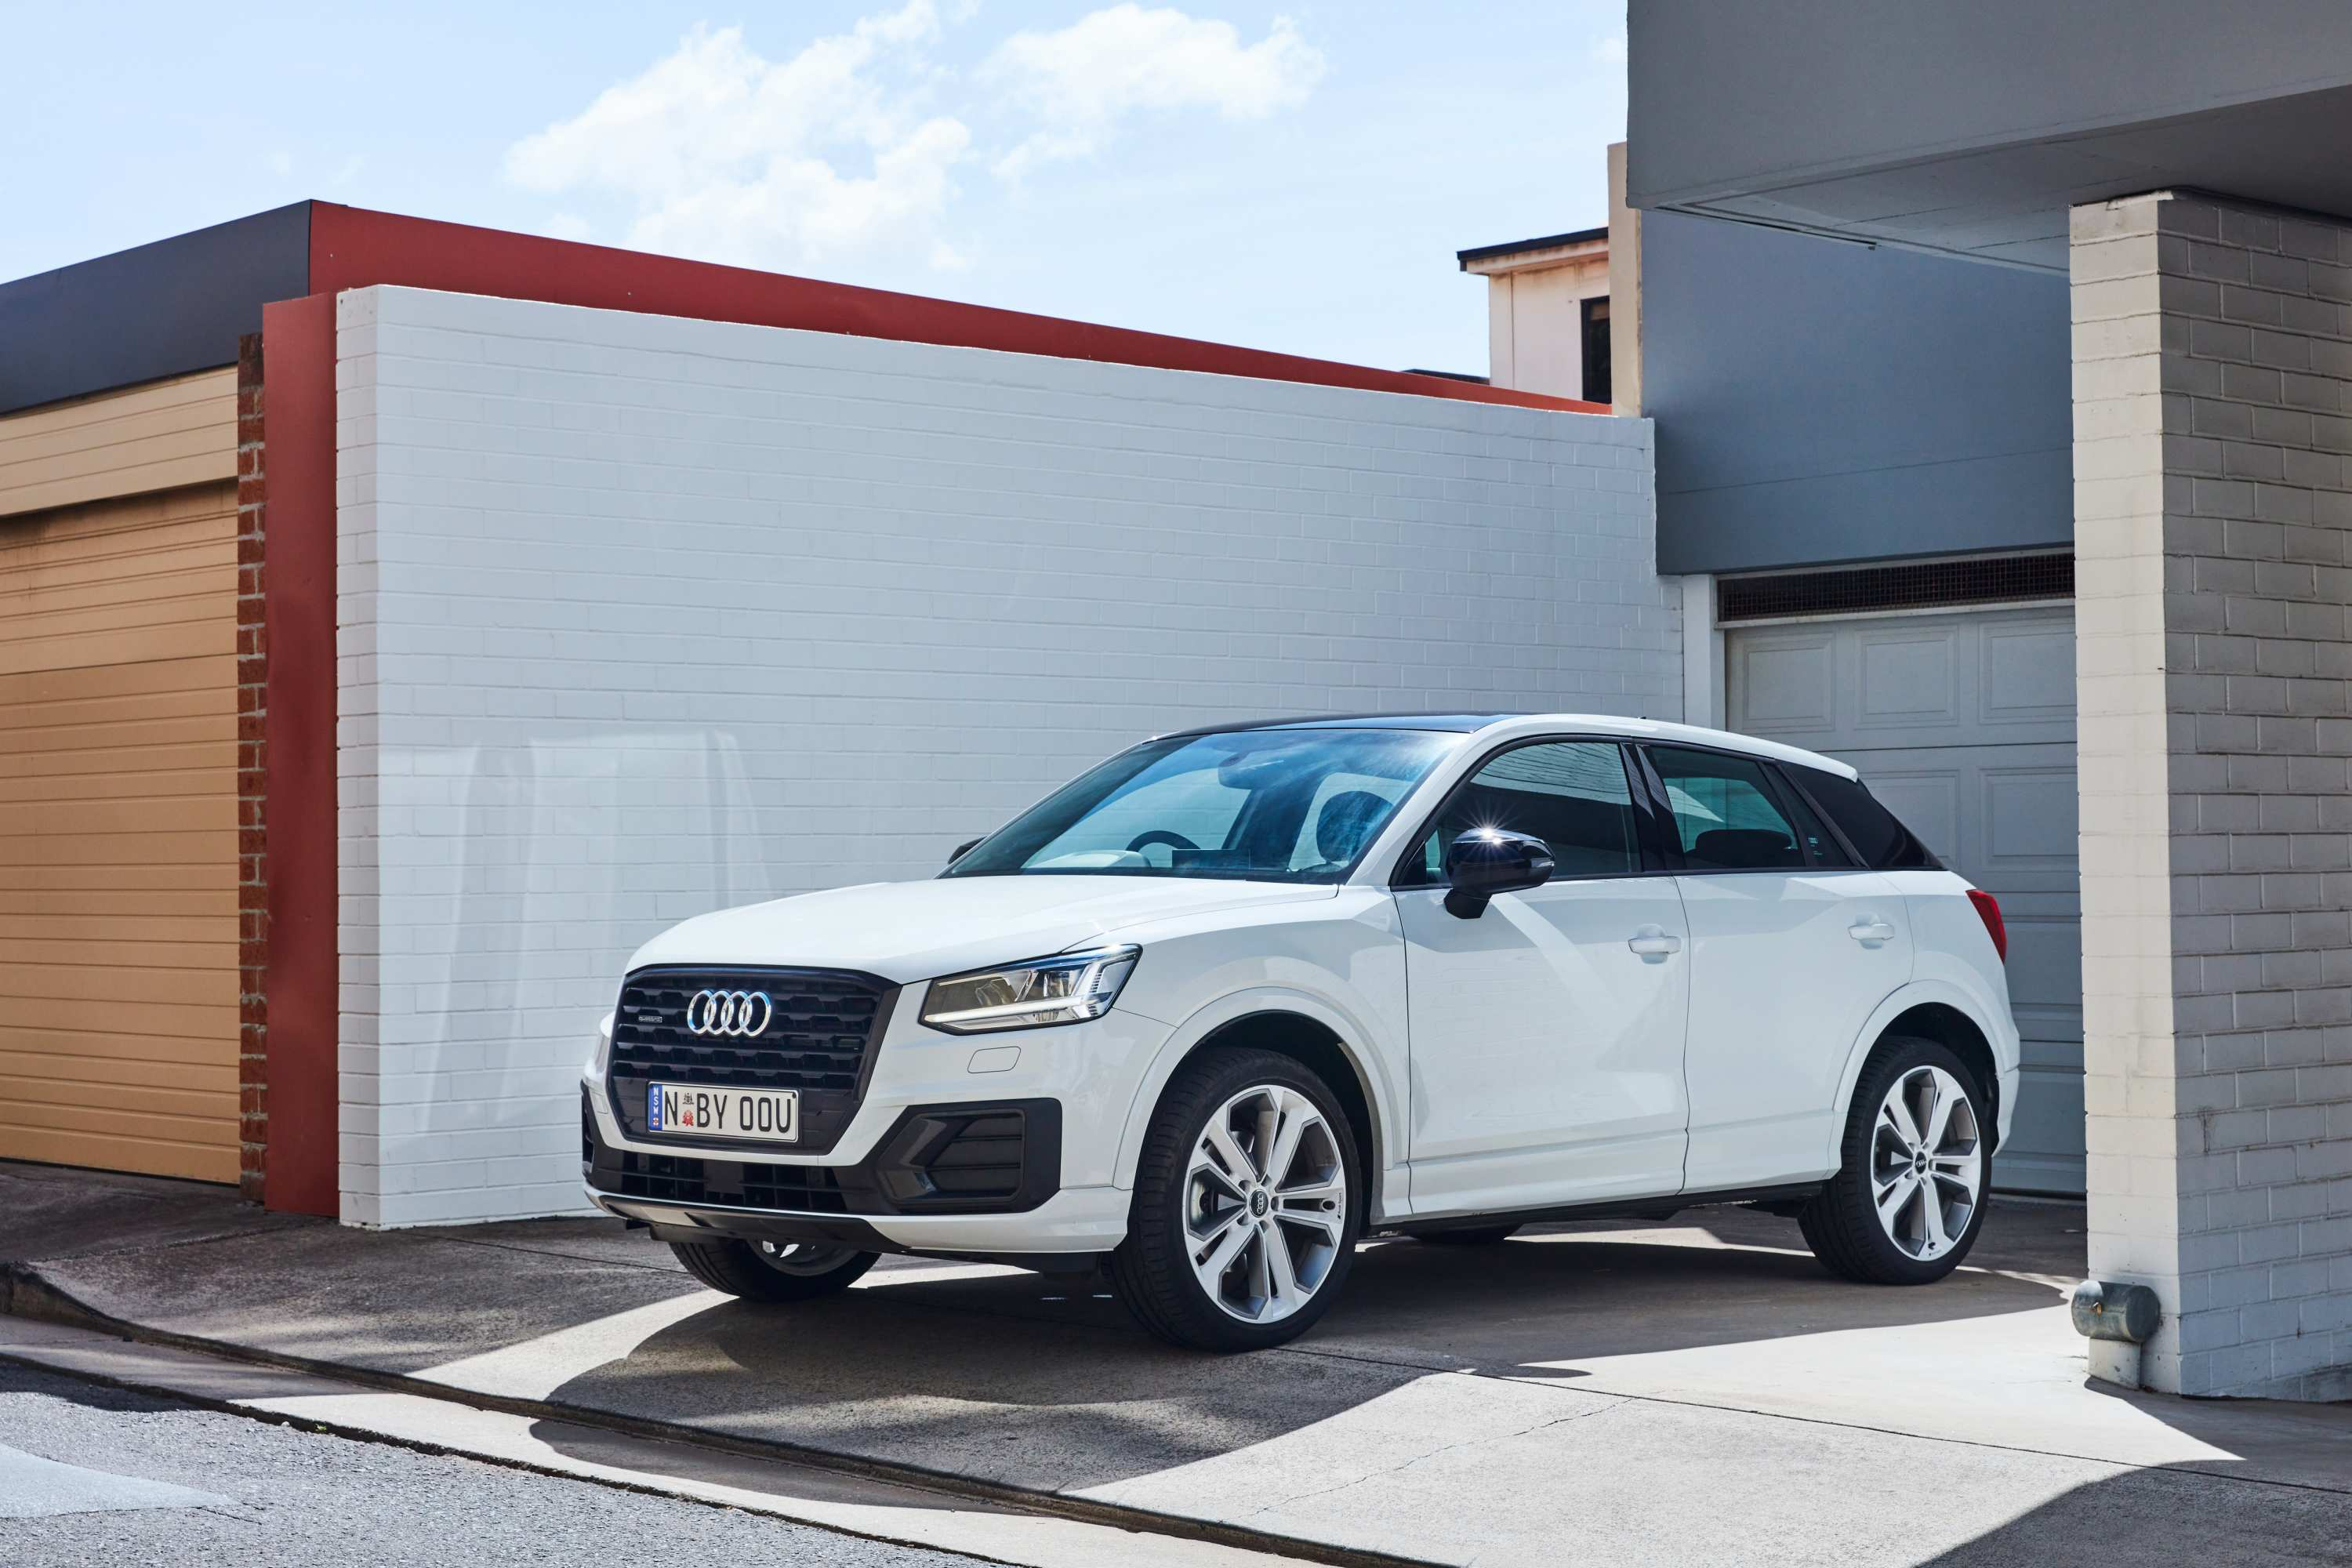 Q2 Edition #2 standard features include Audi smartphone interface, MMI navigation and Audi connect technology with Wi-Fi hotspot and Google services.